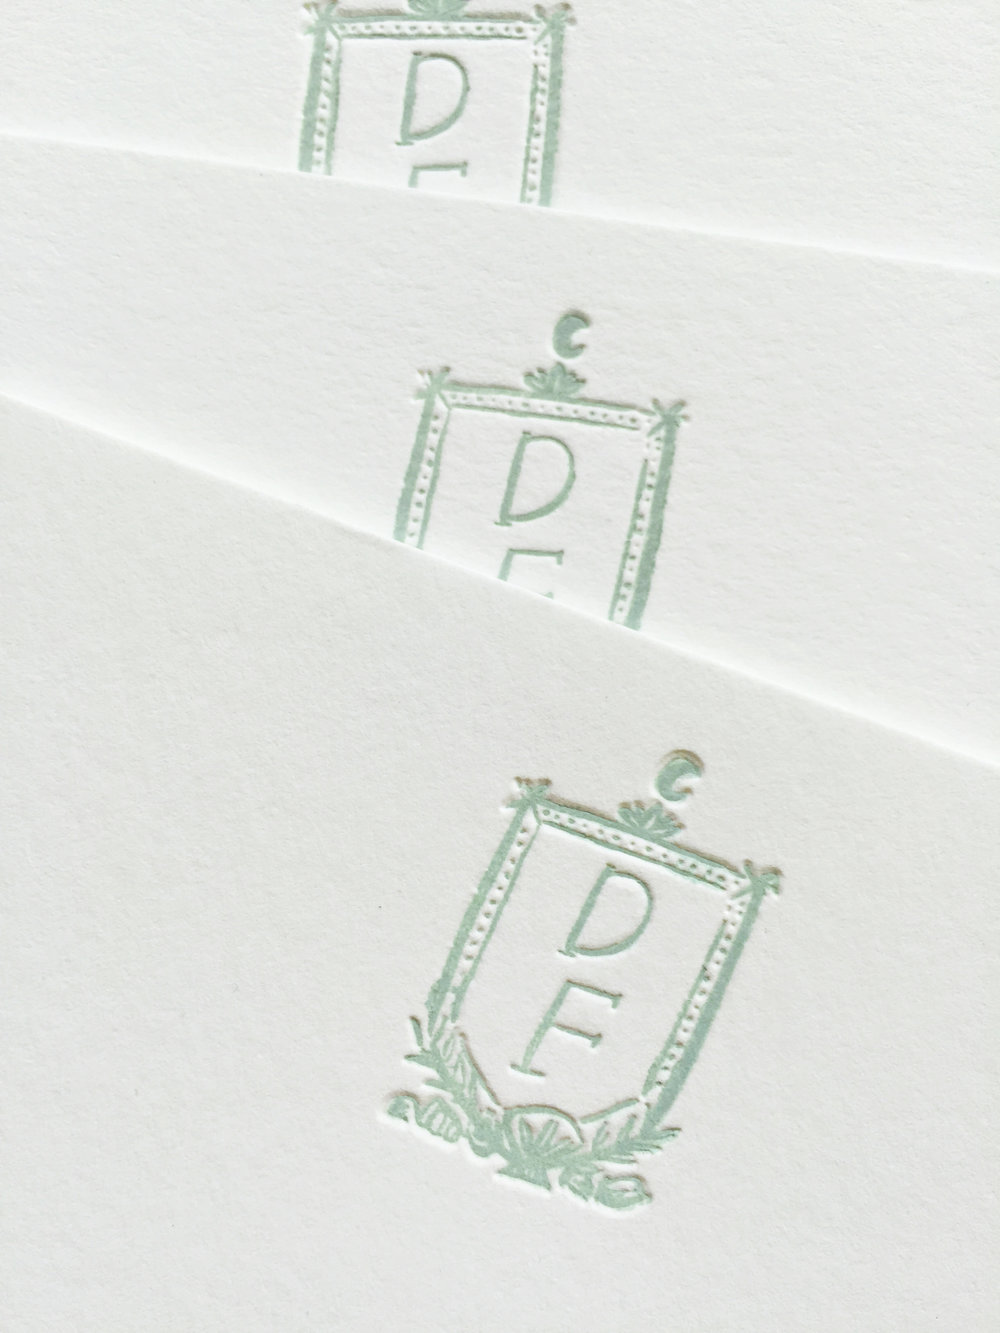 Bespoke stationery with illustrated crest